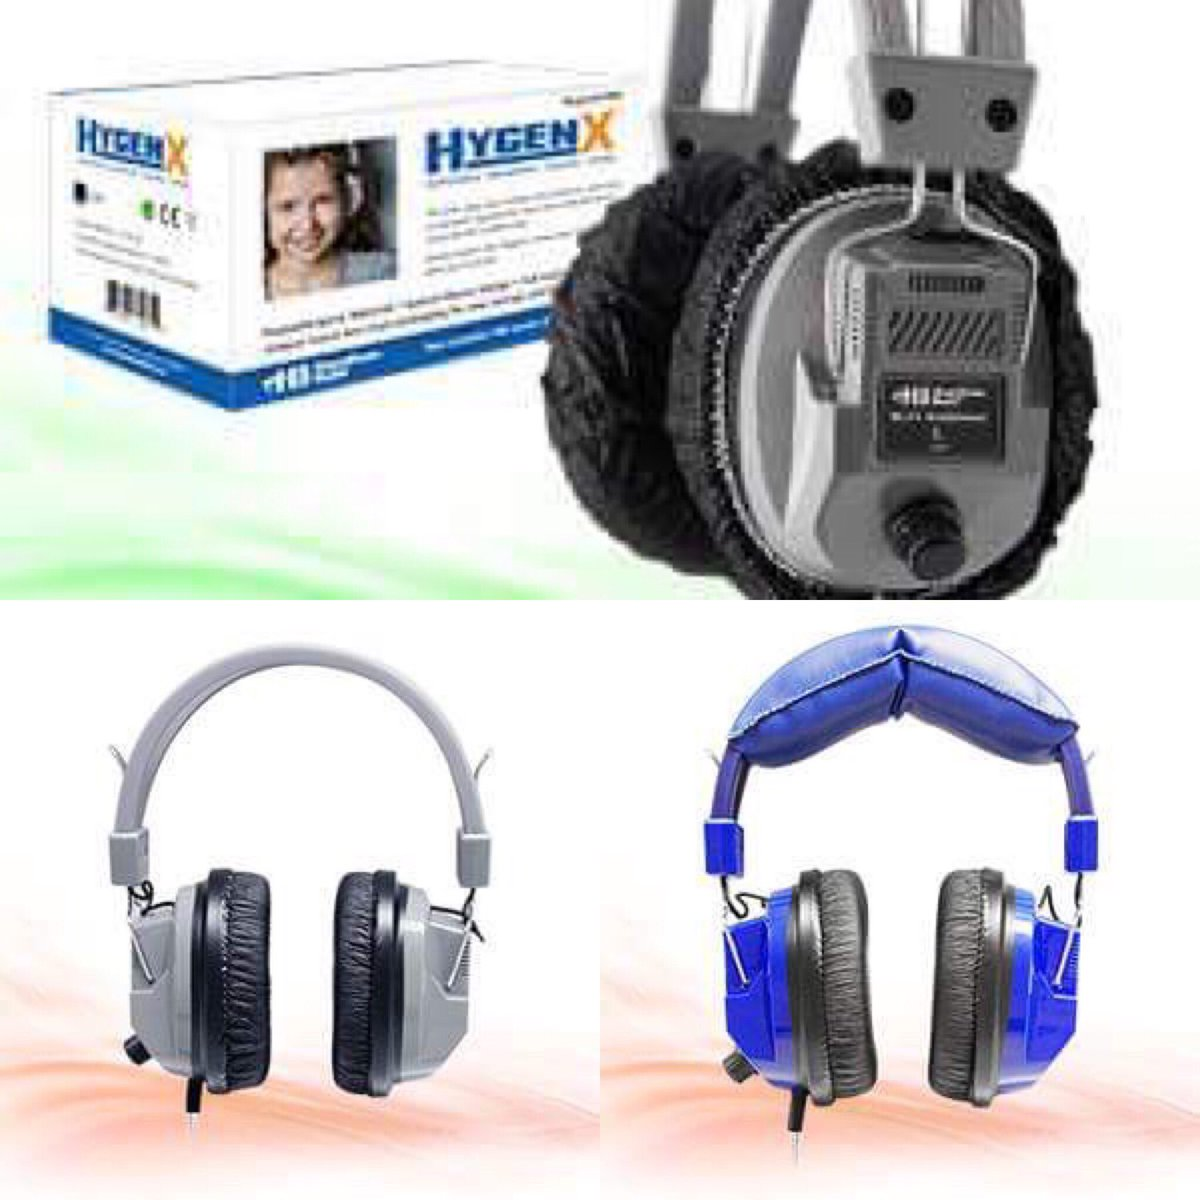 """Looking for tough #classroom tested #headphones for your #K12 students? Check out the great products from #Hamiltonbuhl that are """"made for education""""!😎🍏 Don't forget the #Hygenx covers for a clean classroom! https://t.co/ZltaYuP212  #schoolsupplies #schoolsupplyshopping https://t.co/suuHyoap5s"""